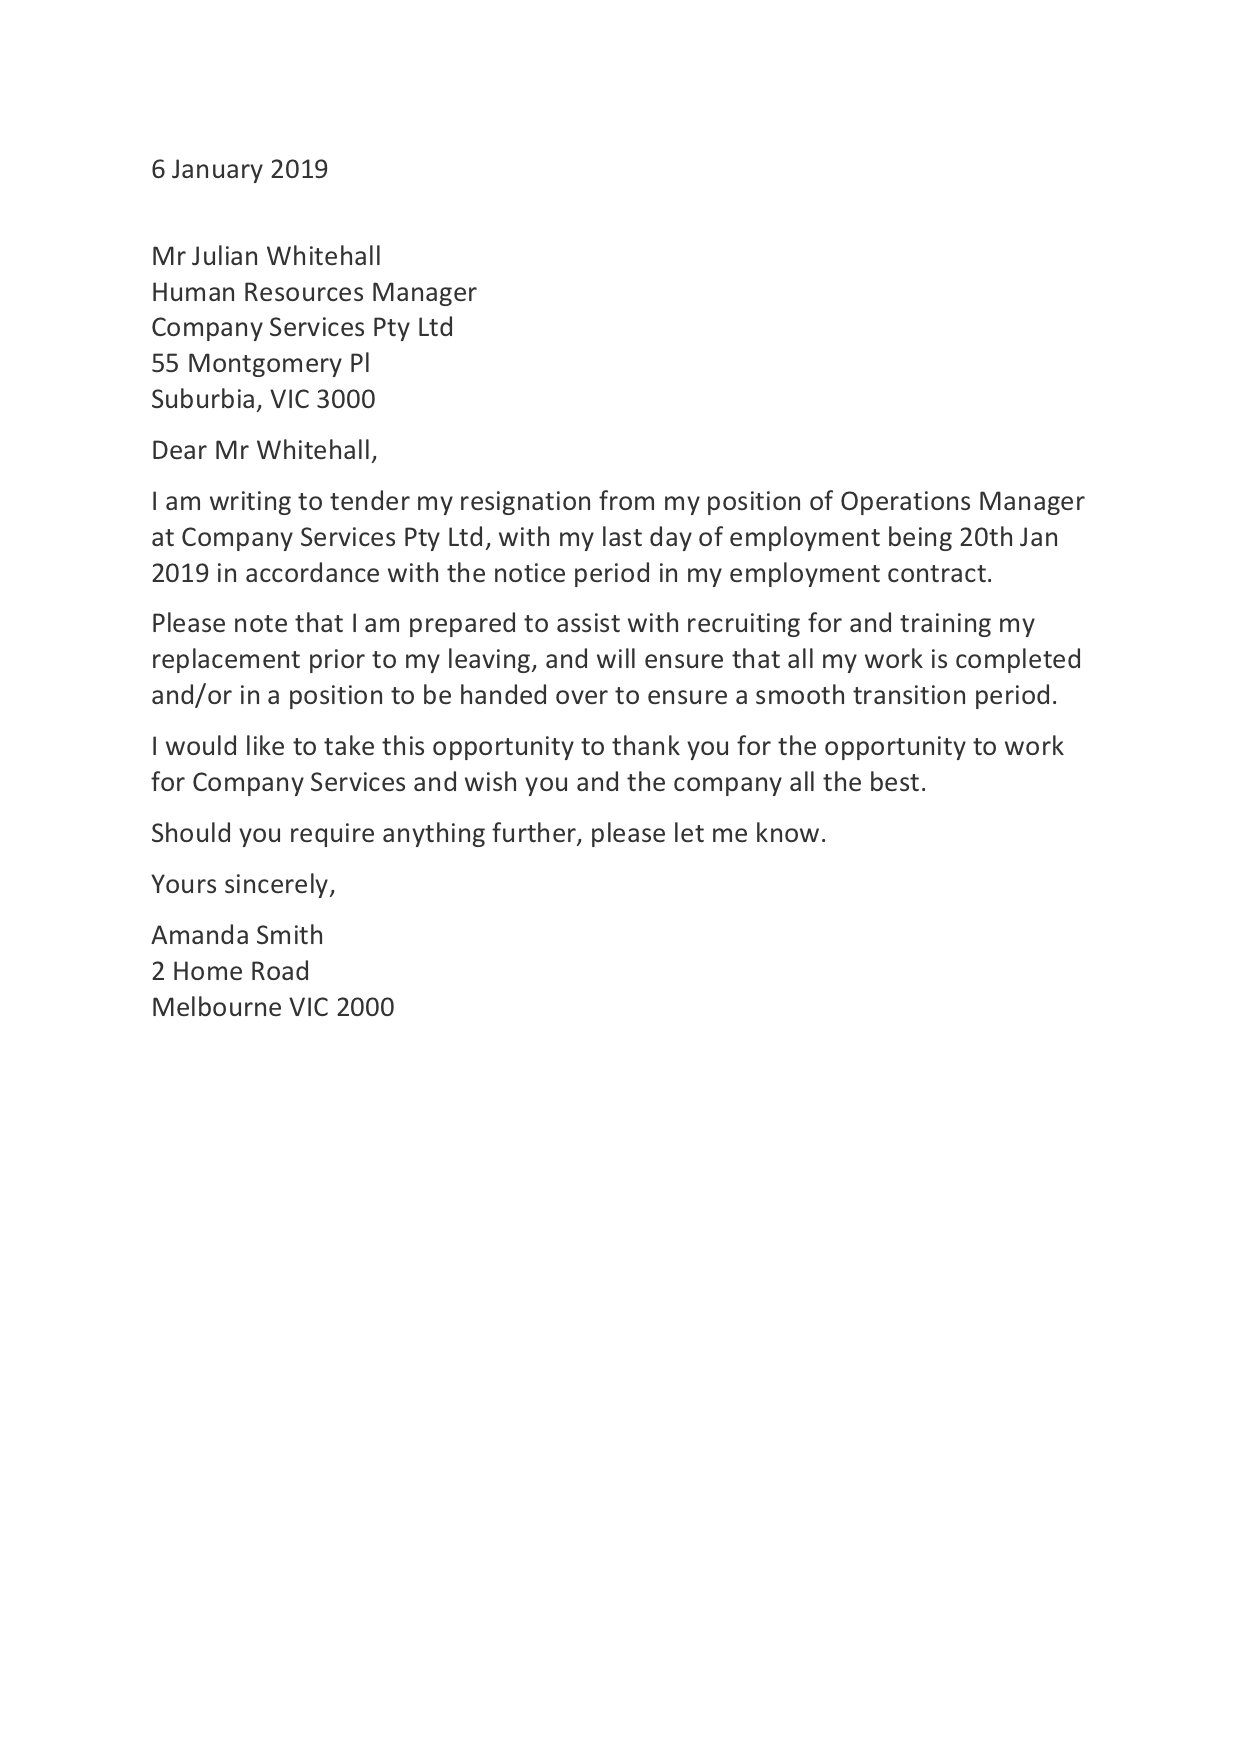 Resignation Letter Templates How to Resign in 30   Training.com.au